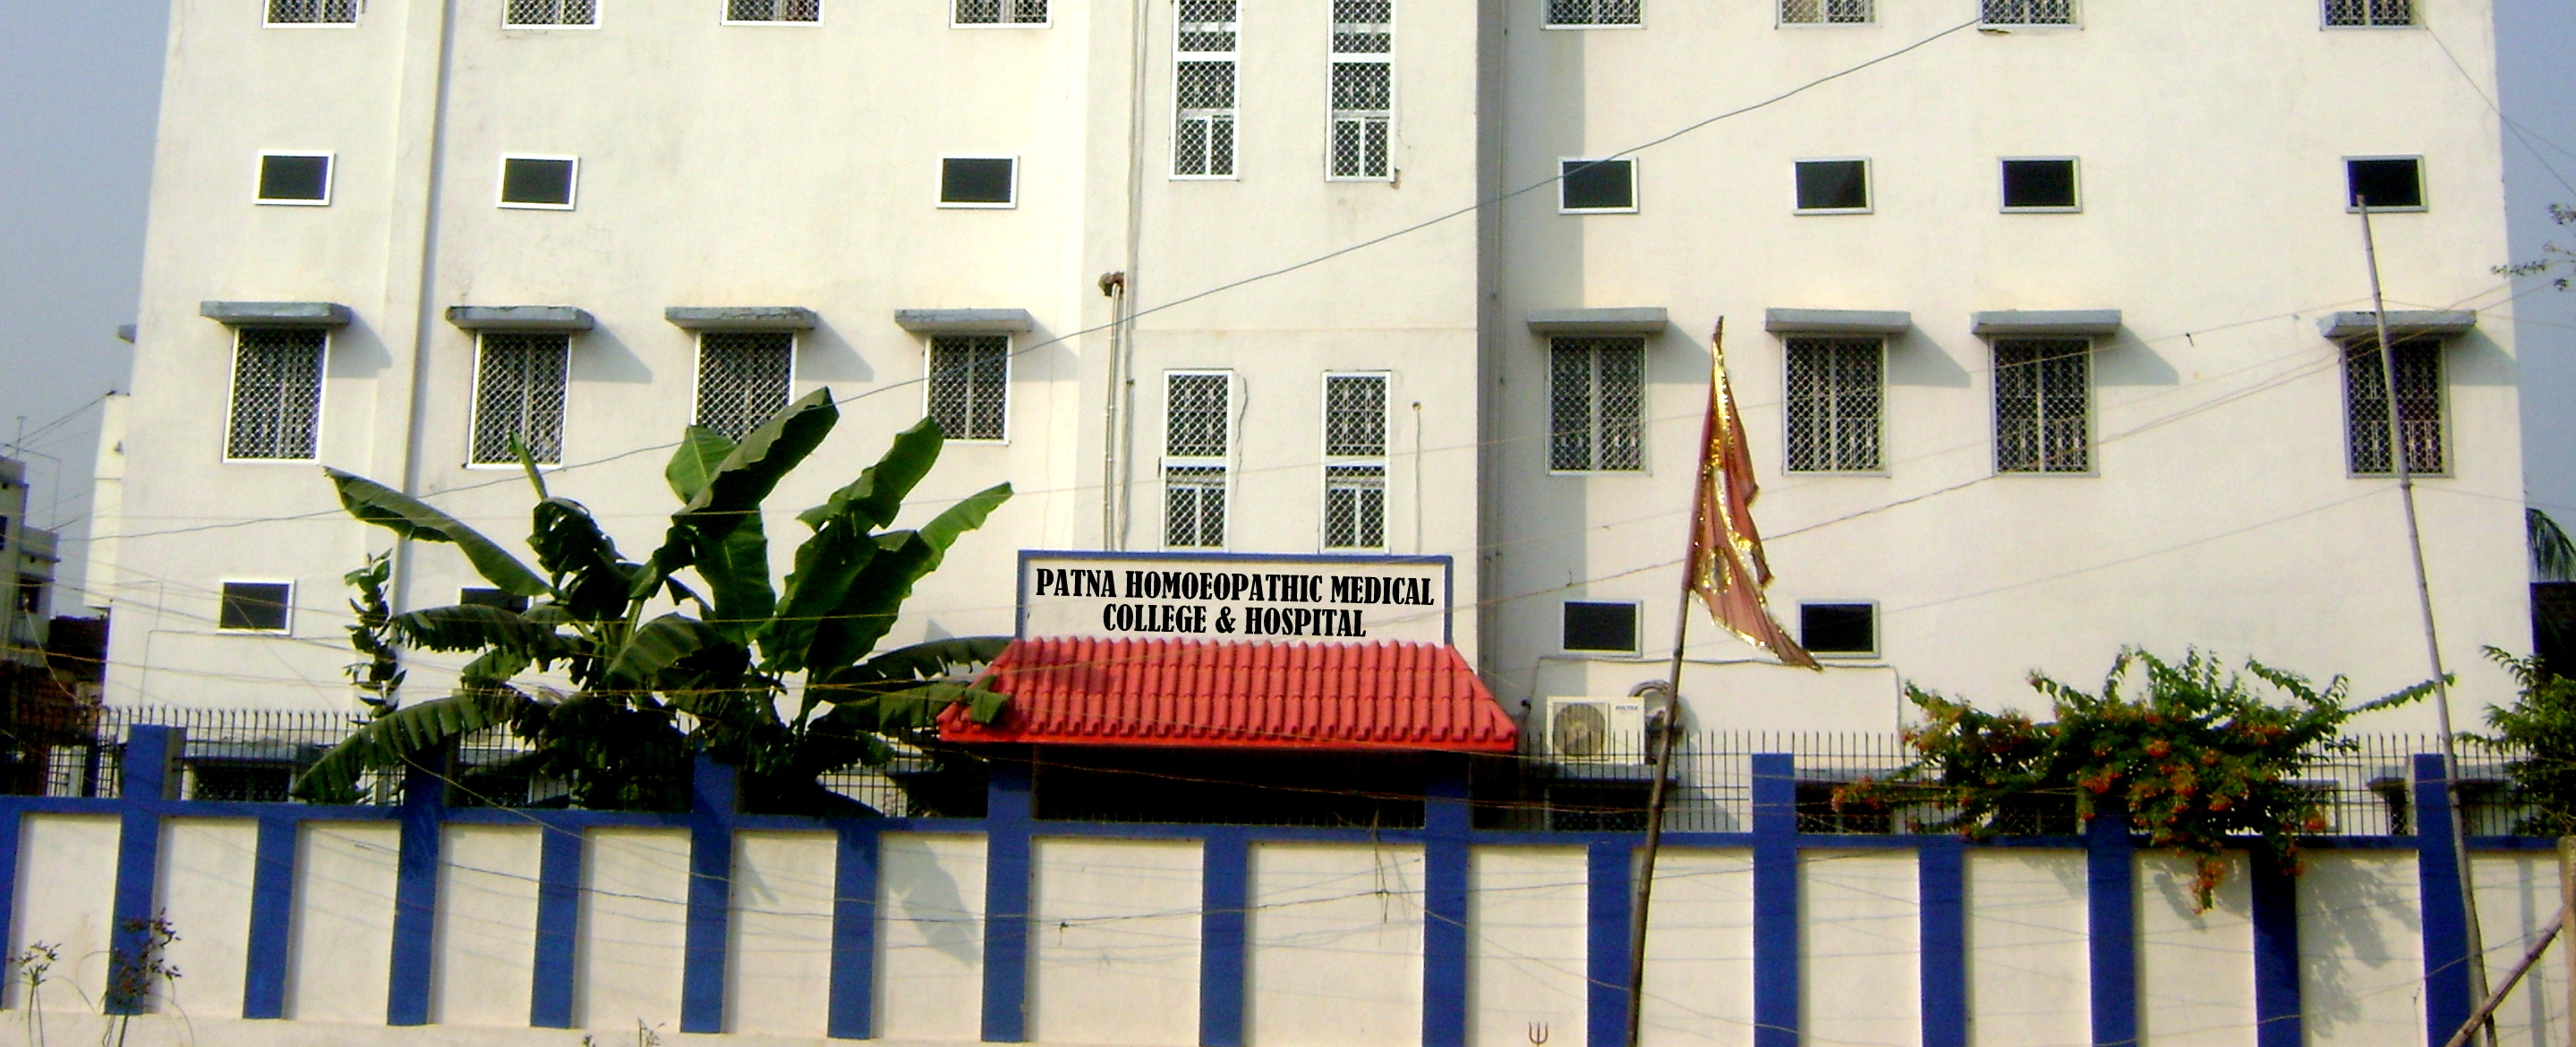 Patna Homoeopathic Medical College and Hospital Image